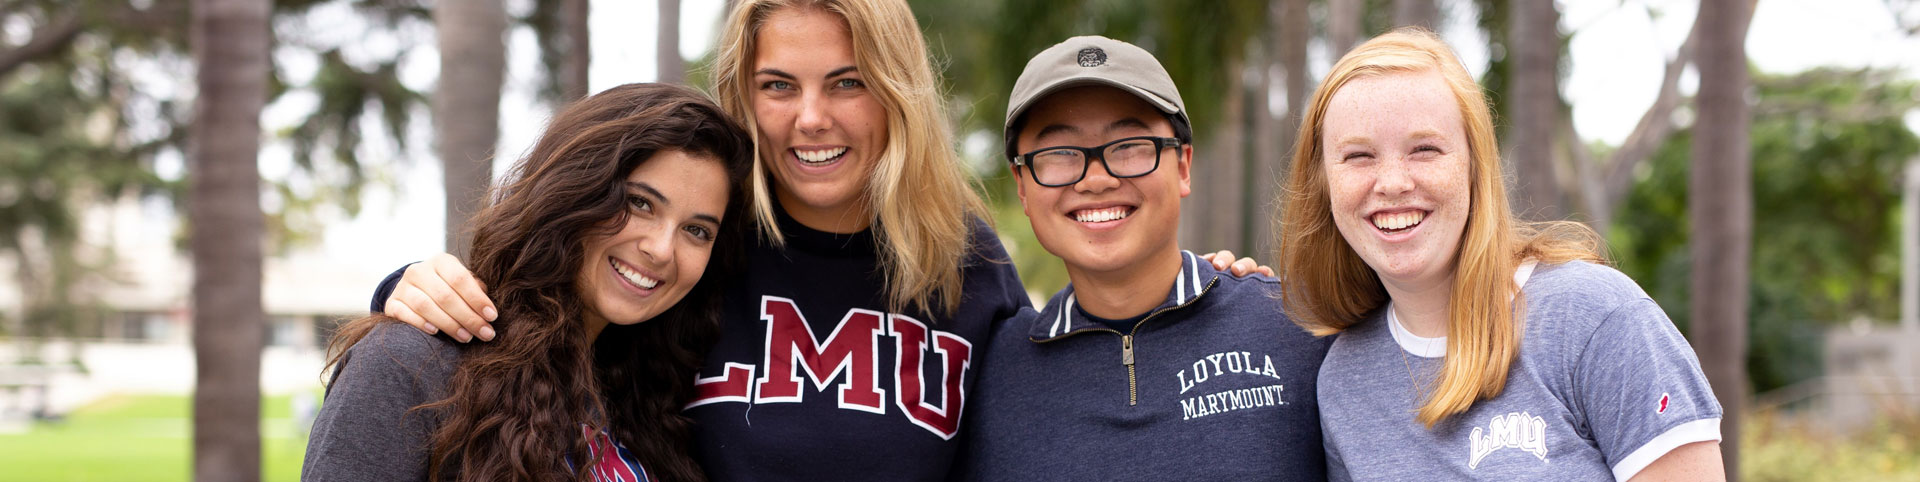 Four students standing together and smiling on Palm Walk